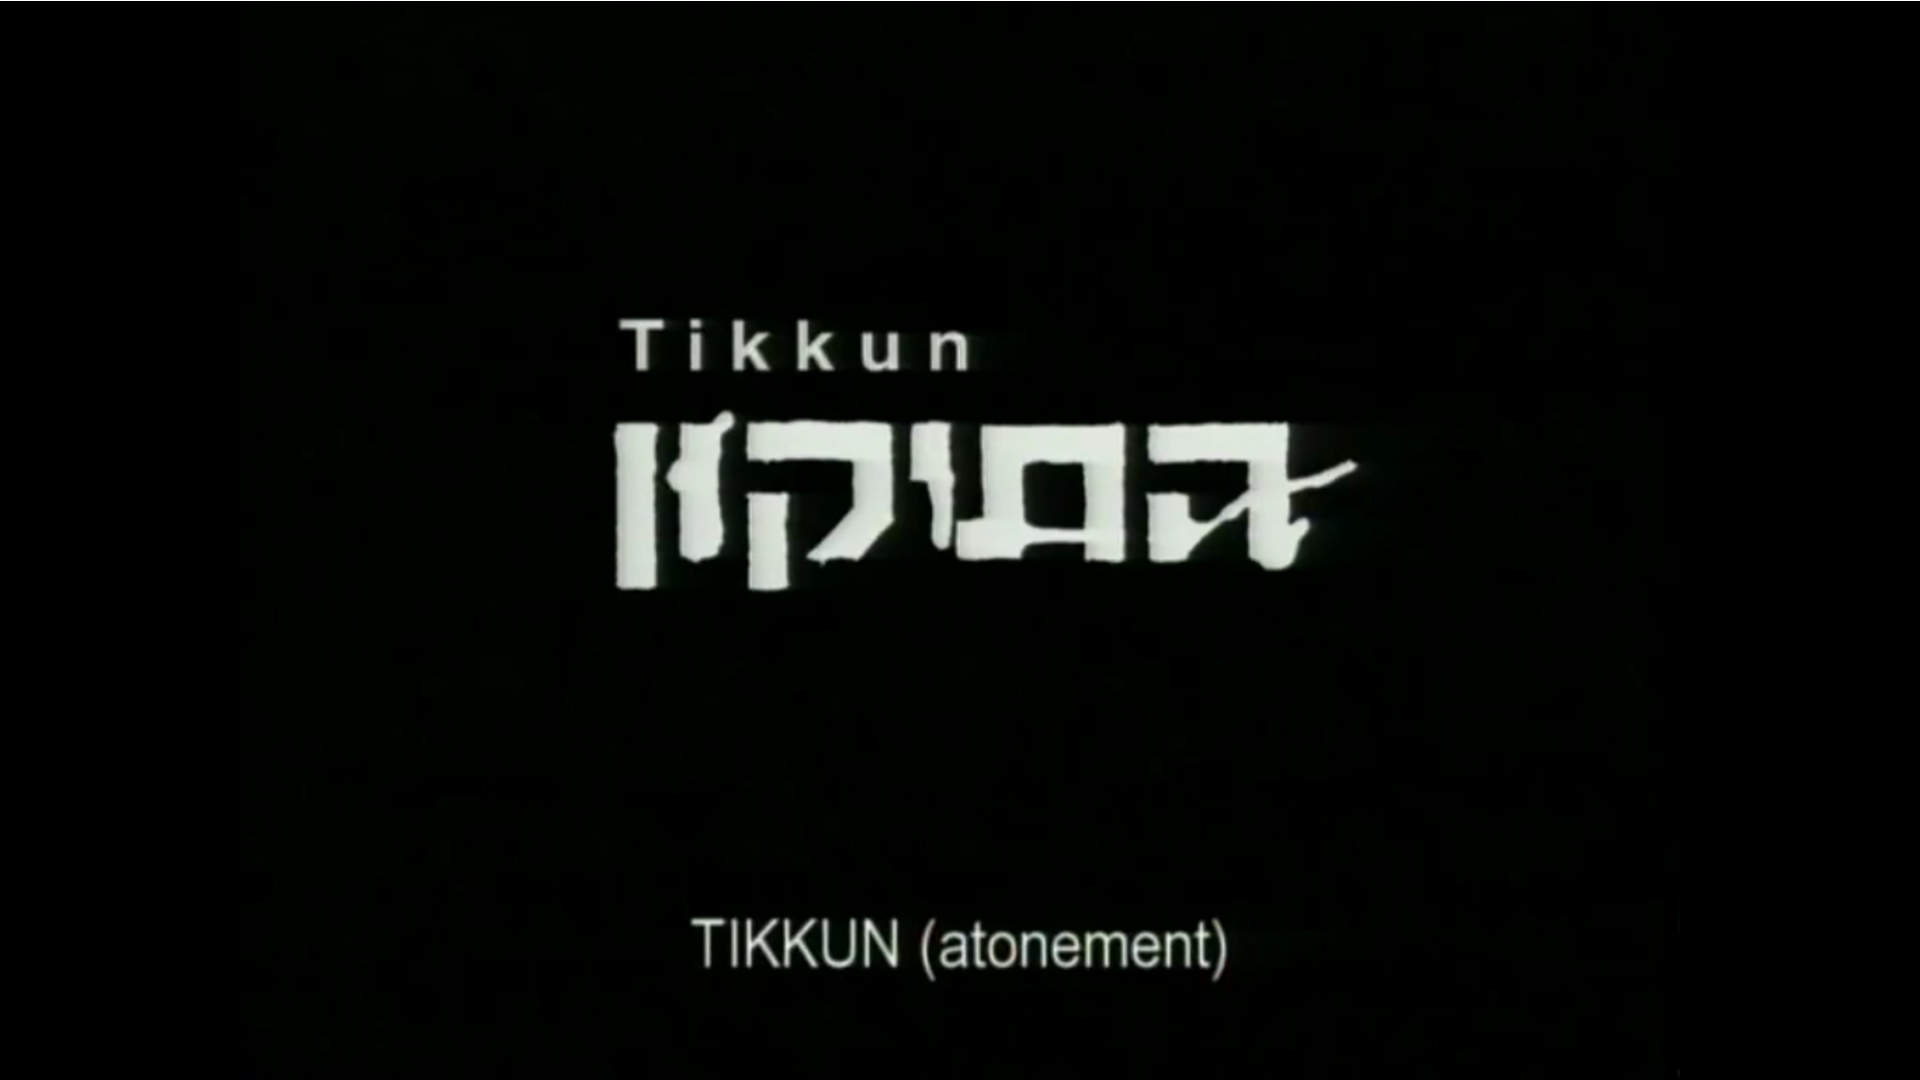 Atonement (Tikkun)